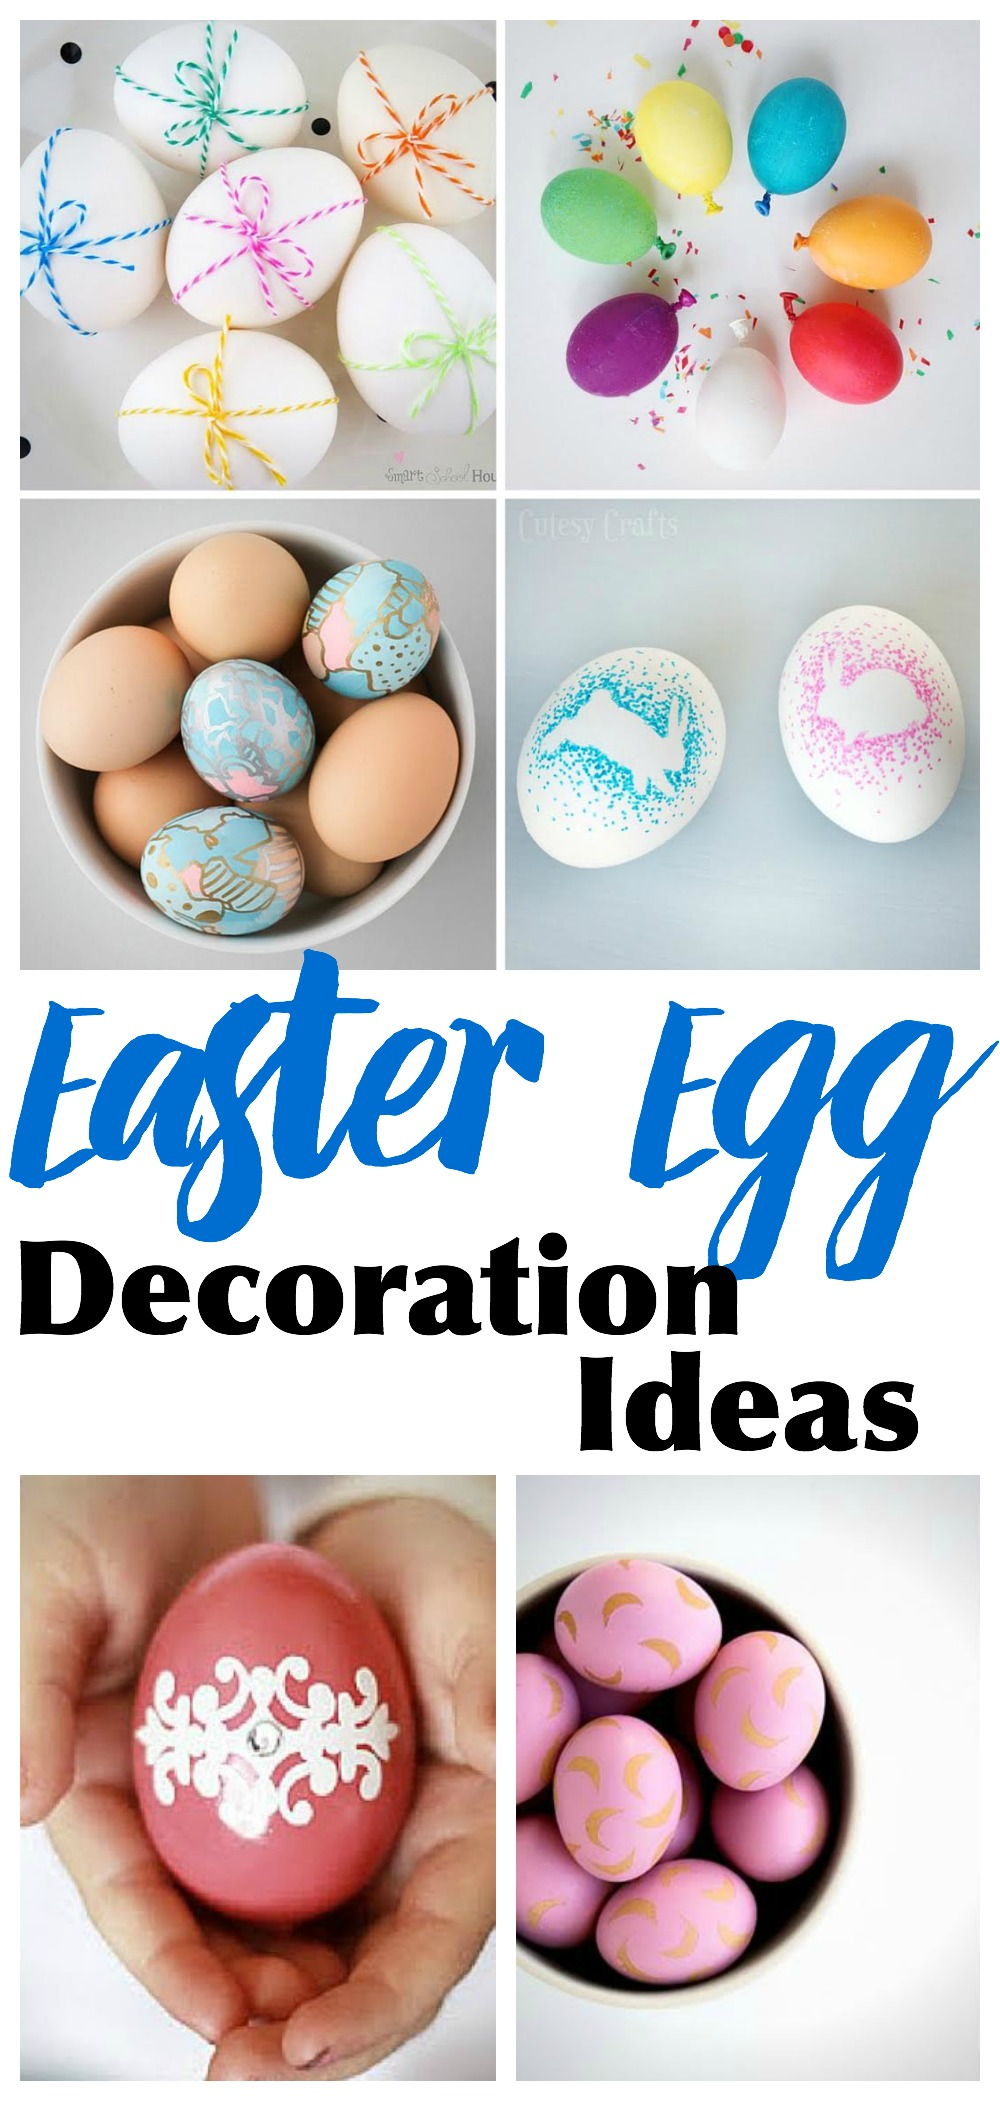 31 Creative Easter Egg Decoration Ideas